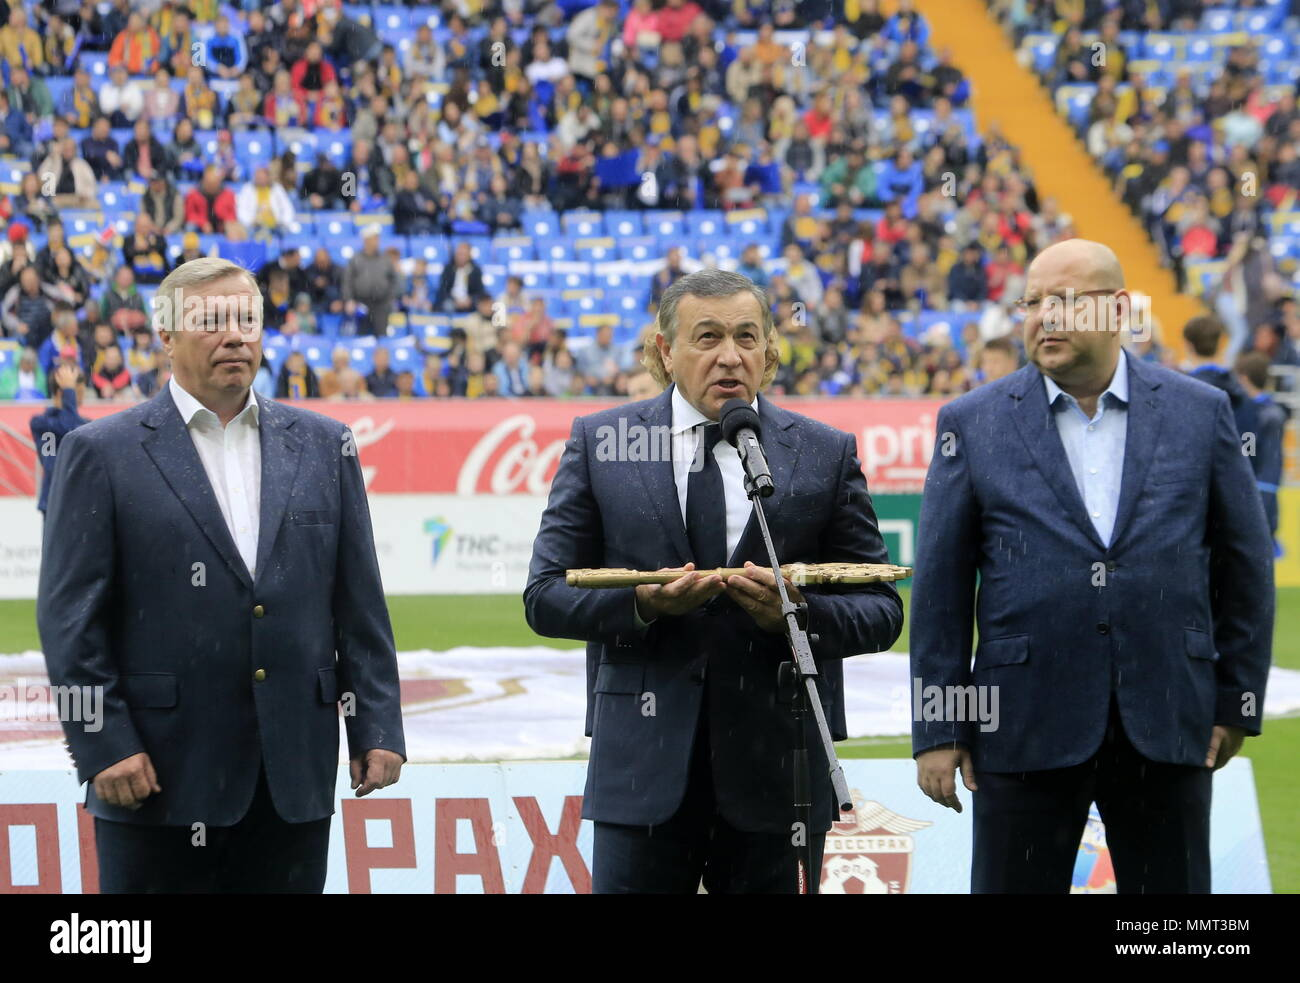 Rostov On Don, Russia. 13th May, 2018. ROSTOV-ON-DON, RUSSIA - MAY 13, 2018: Rostov-on-Don Region Governor Vasily Golubev (C) speaks at a ceremony to open Rostov Arena Stadium ahead of a 2017/2018 Russian Football Premier League Round 30 match between FC Rostov and FC Ural, the third trial for the venue to host ahead of the 2018 FIFA World Cup. Valery Matytsin/TASS Credit: ITAR-TASS News Agency/Alamy Live News Stock Photo